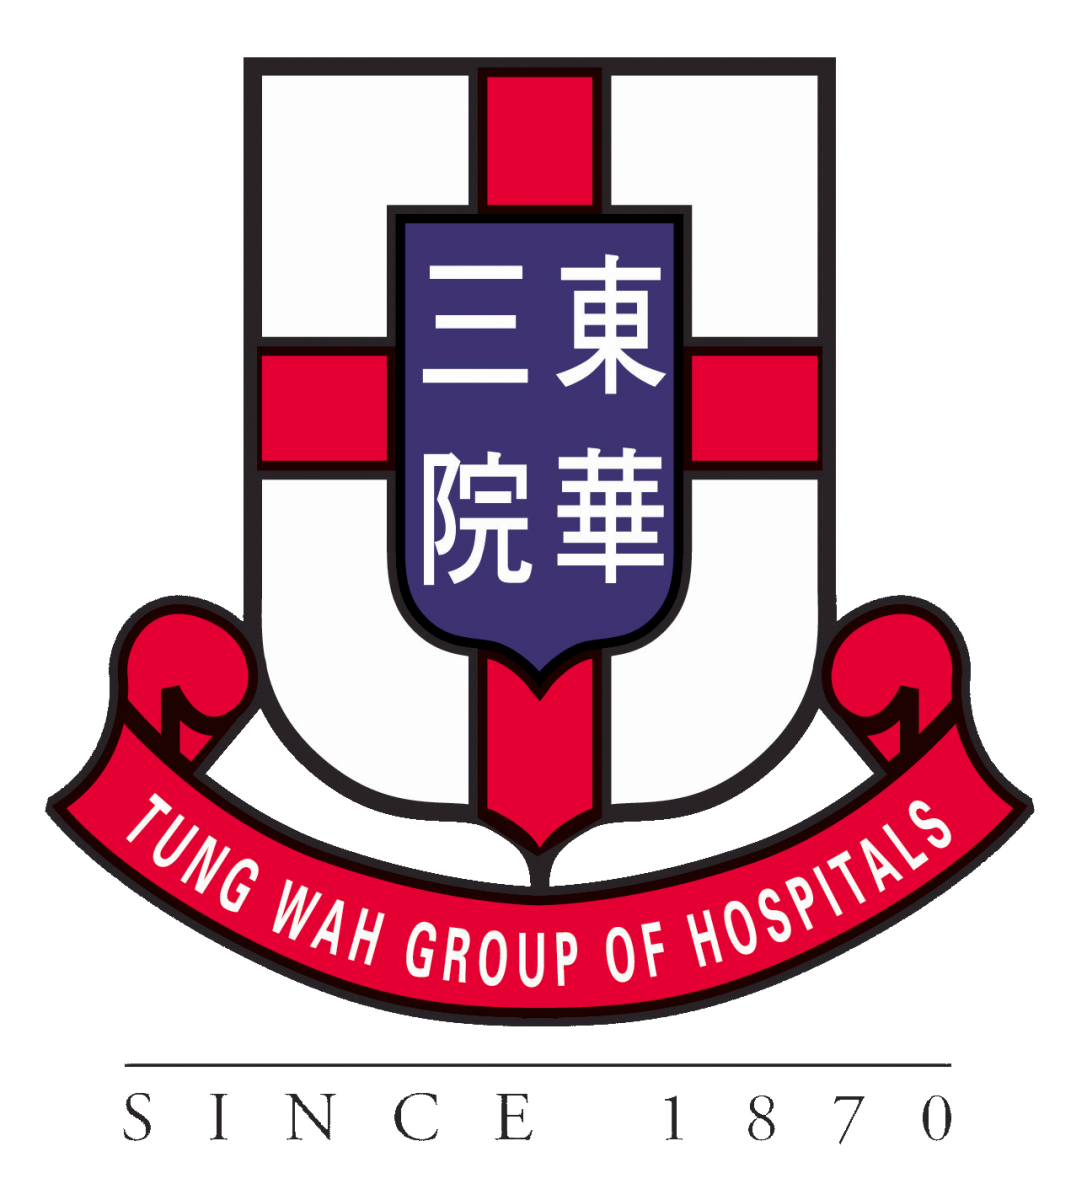 東華三院 (沙田, 屯門) Tung Wah Group of Hospitals (Shatin, Tuen Mun)